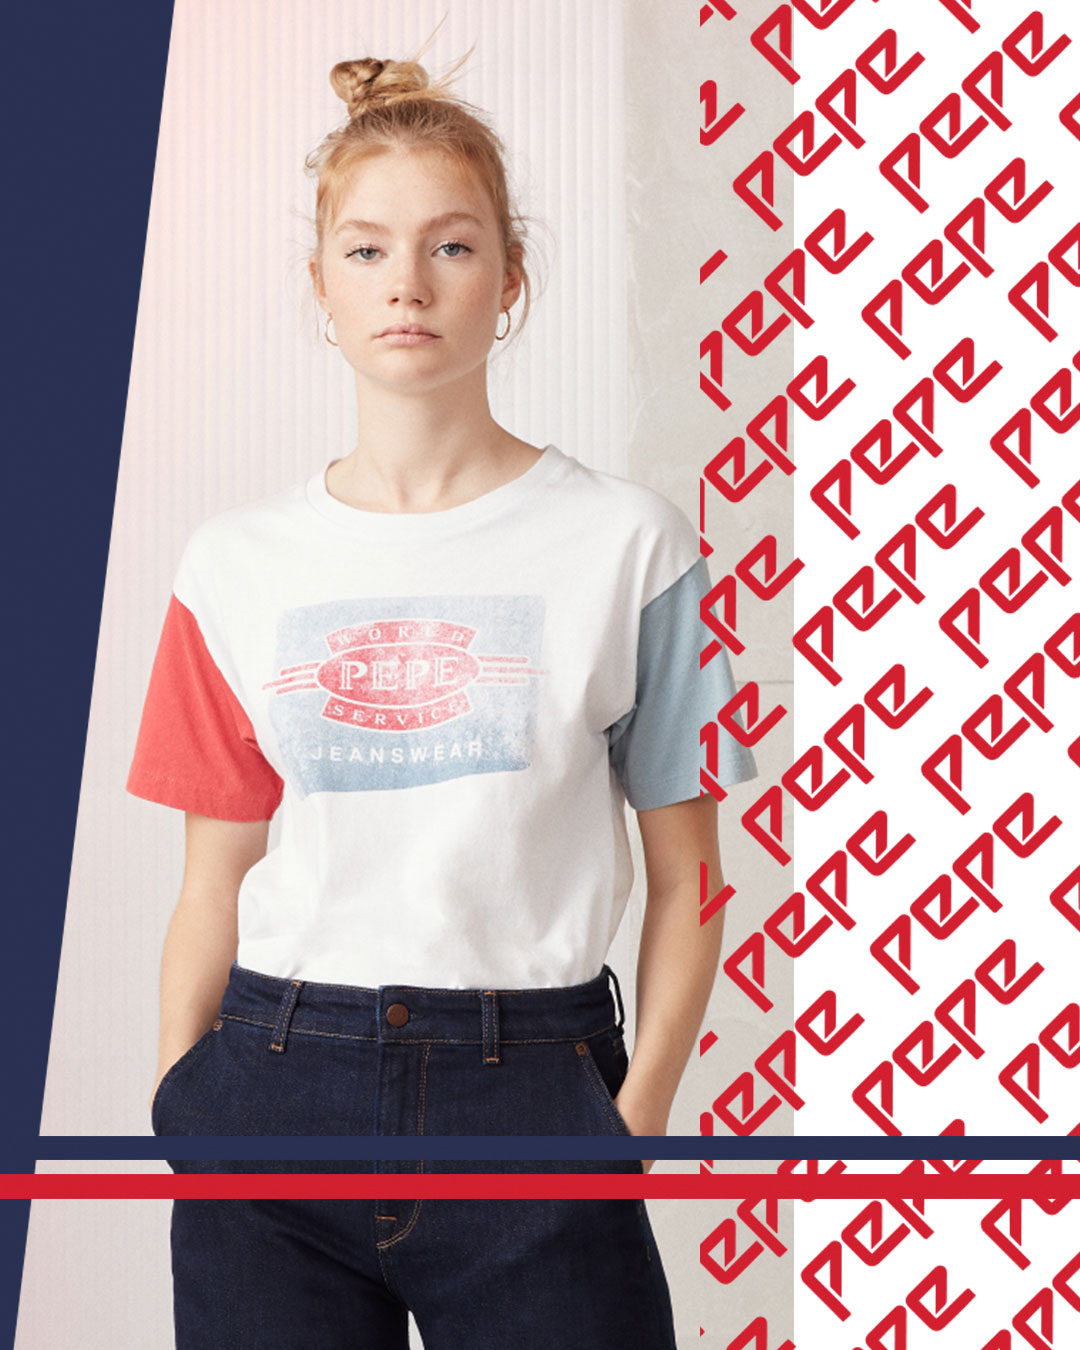 Pepe a new genertion by Pepe Jeans